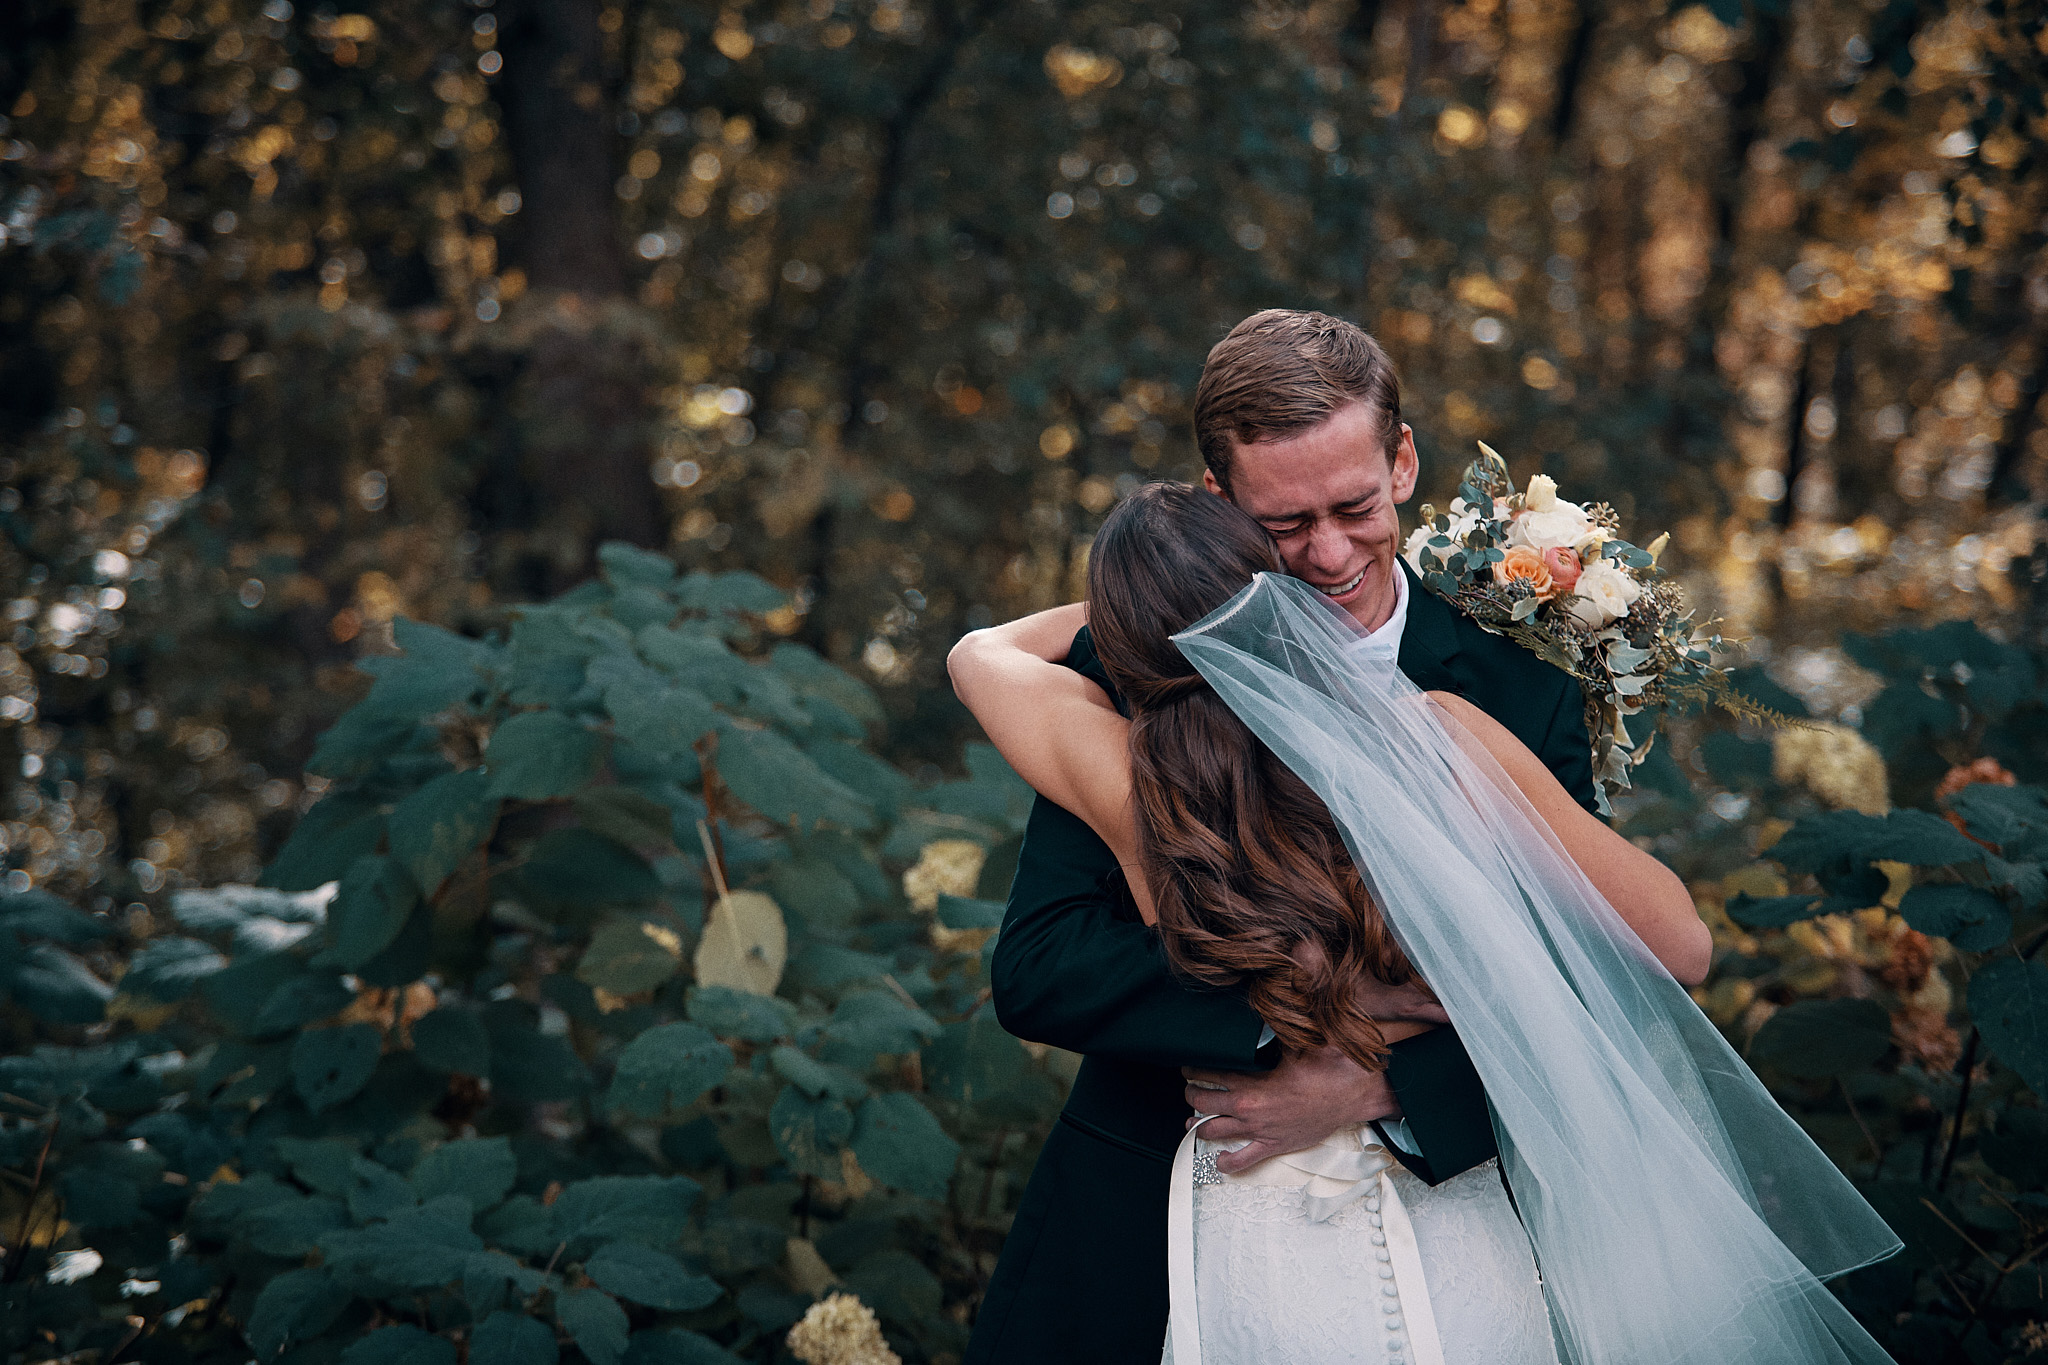 Gorgeous_Wedding_At_The_Outing_Lodge_In_Stillwater_Photography_High_End_Brand_Photographer_Something_Candid_015.JPG